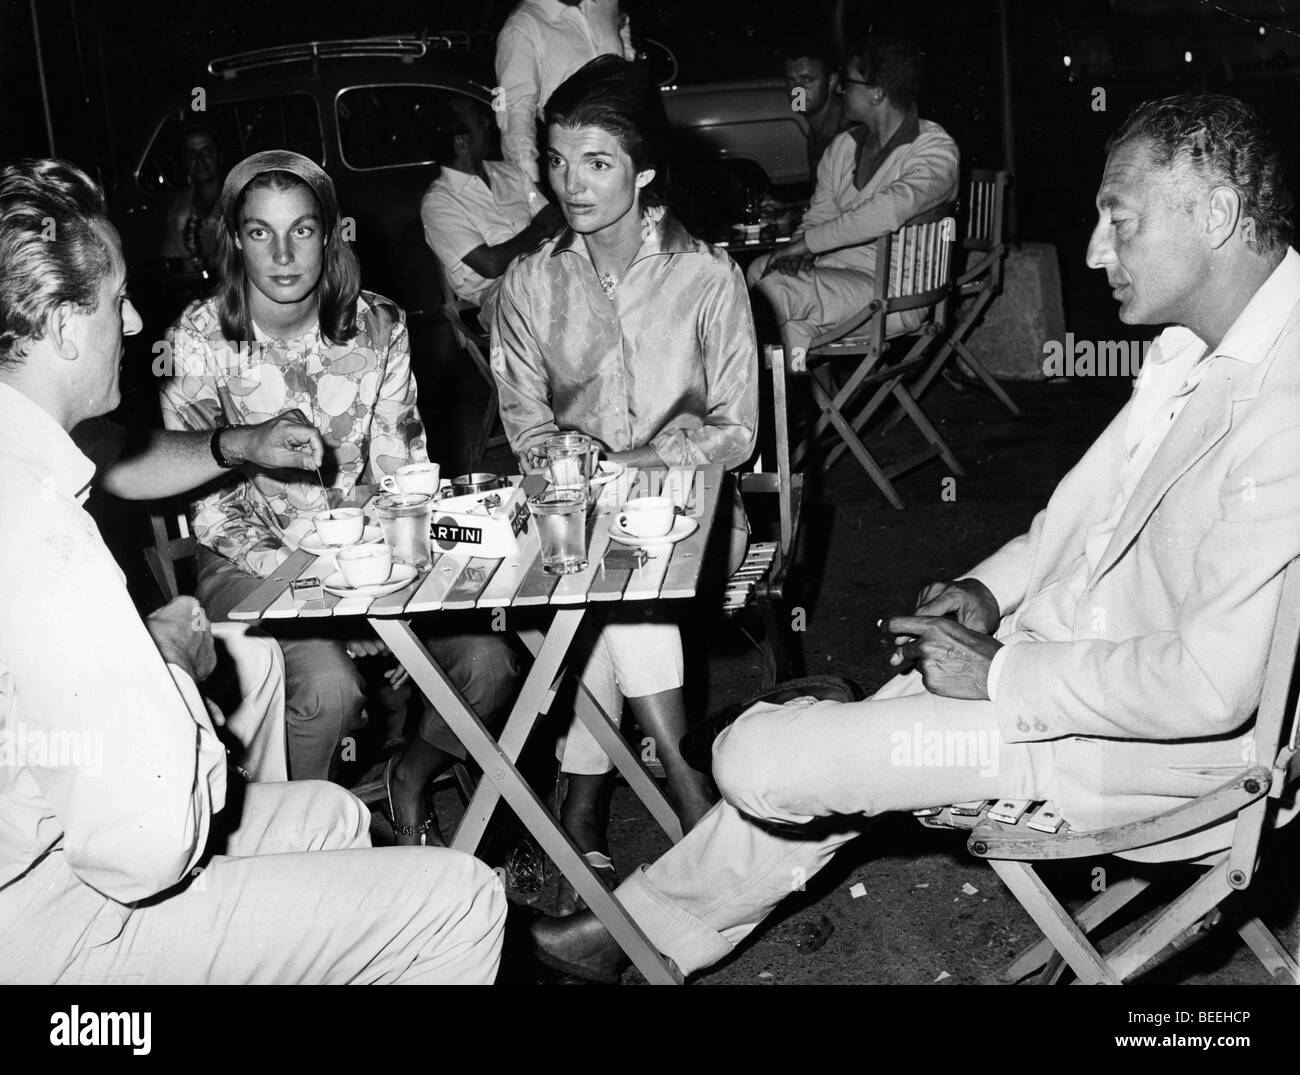 First lady Jackie Kennedy chats with Gianni Agnelli - Stock Image